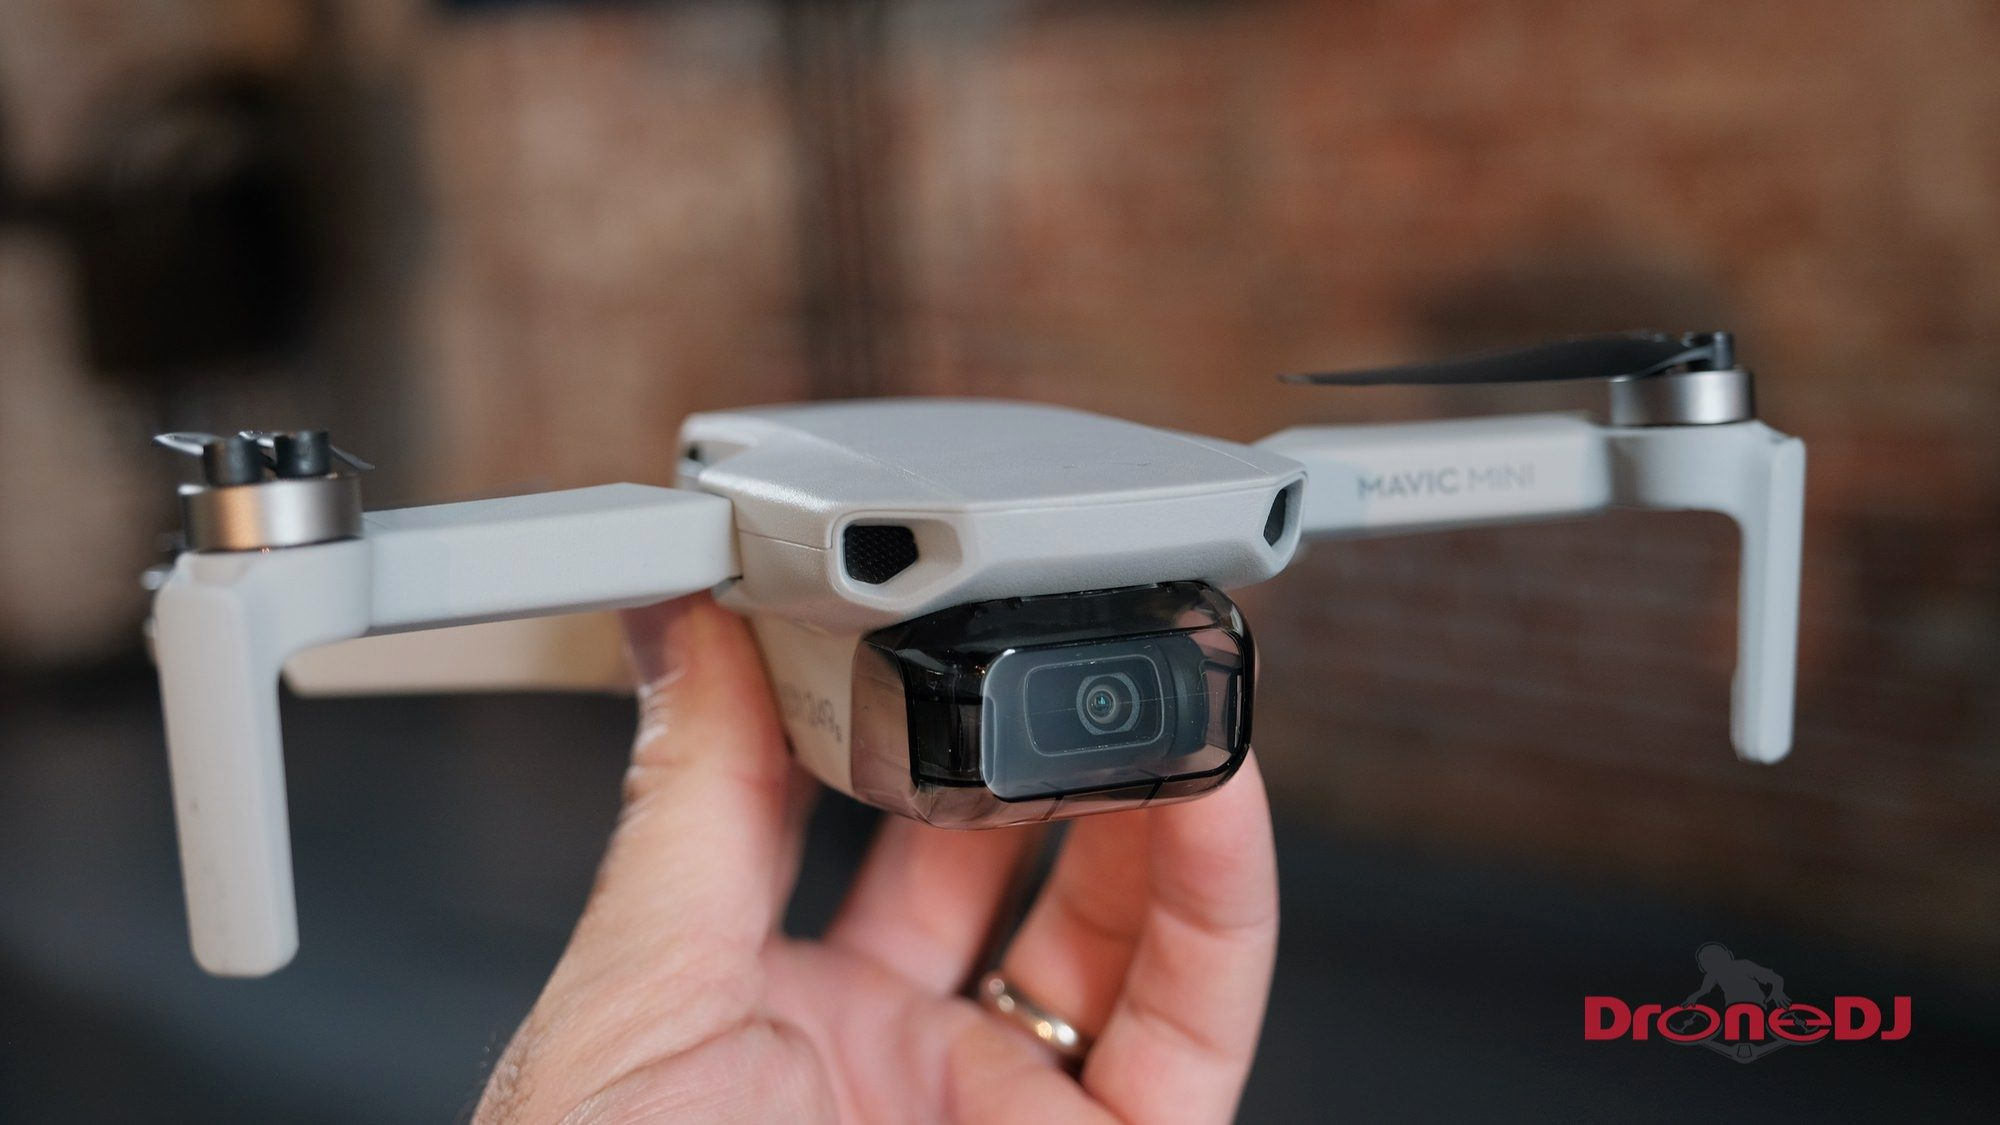 New Ultra-Light DJI Mavic Mini introduced - It weighs only 249 grams!